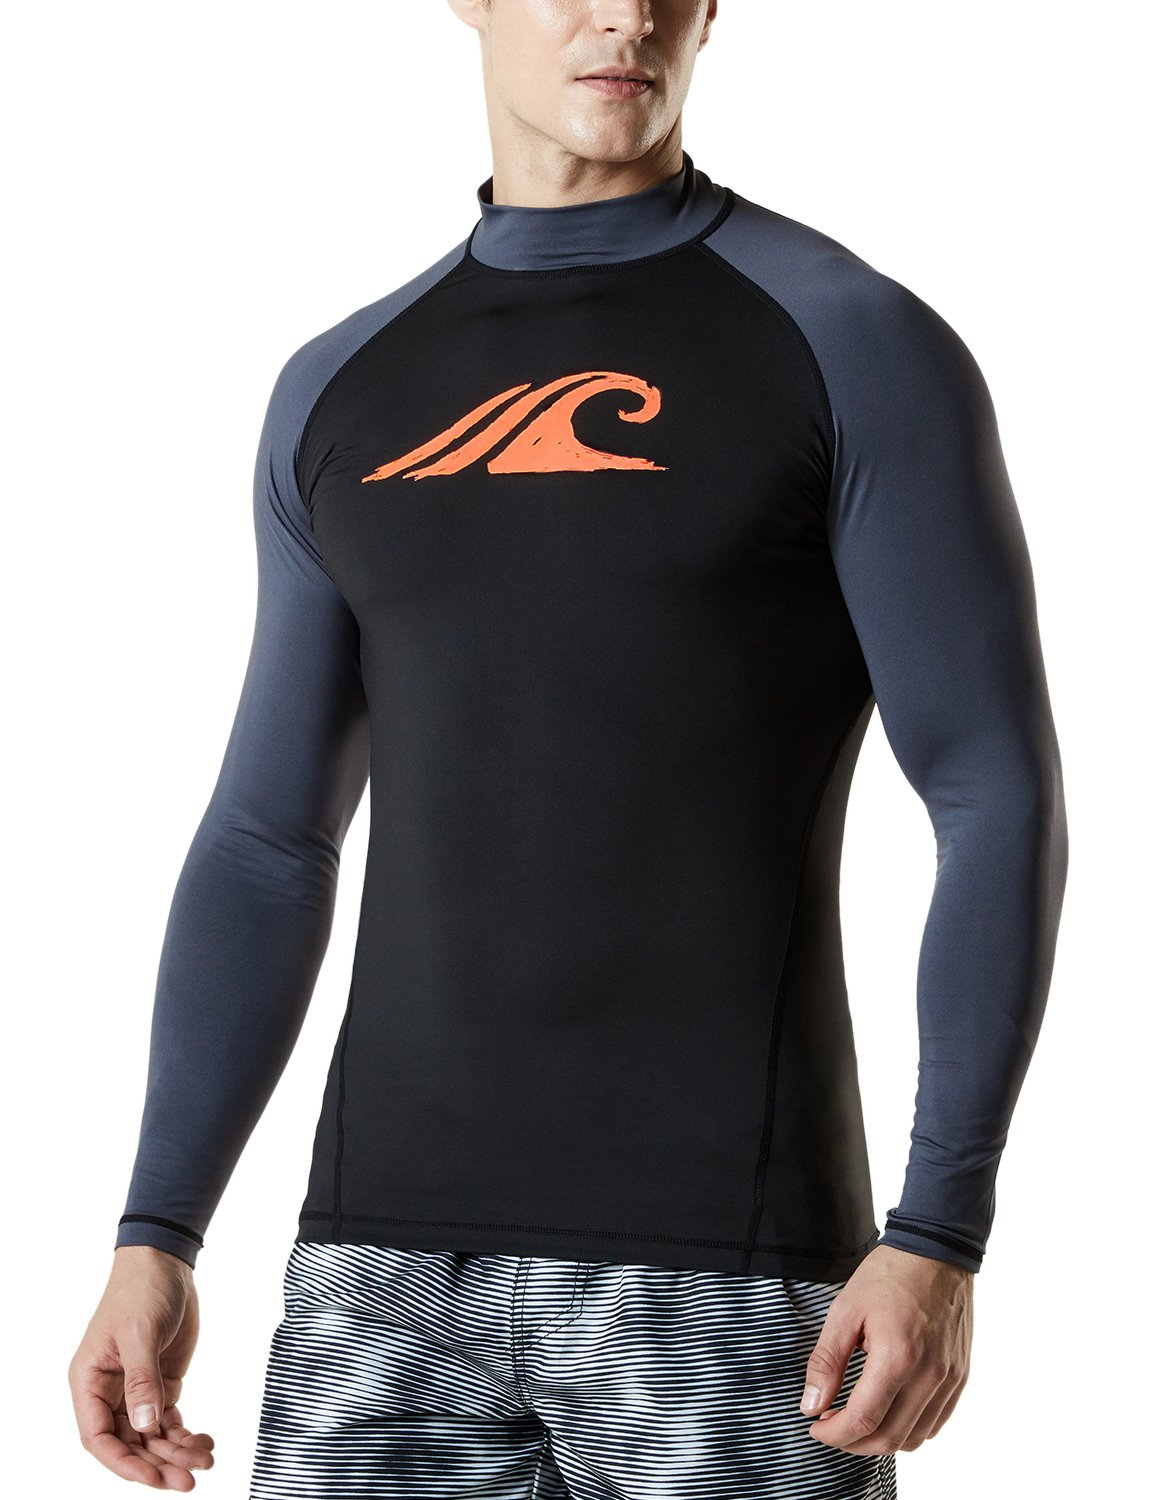 Tesla Men's UPF 50+ Long Sleeve Rashguard MSR Series Tesla Gears TM-MSR12